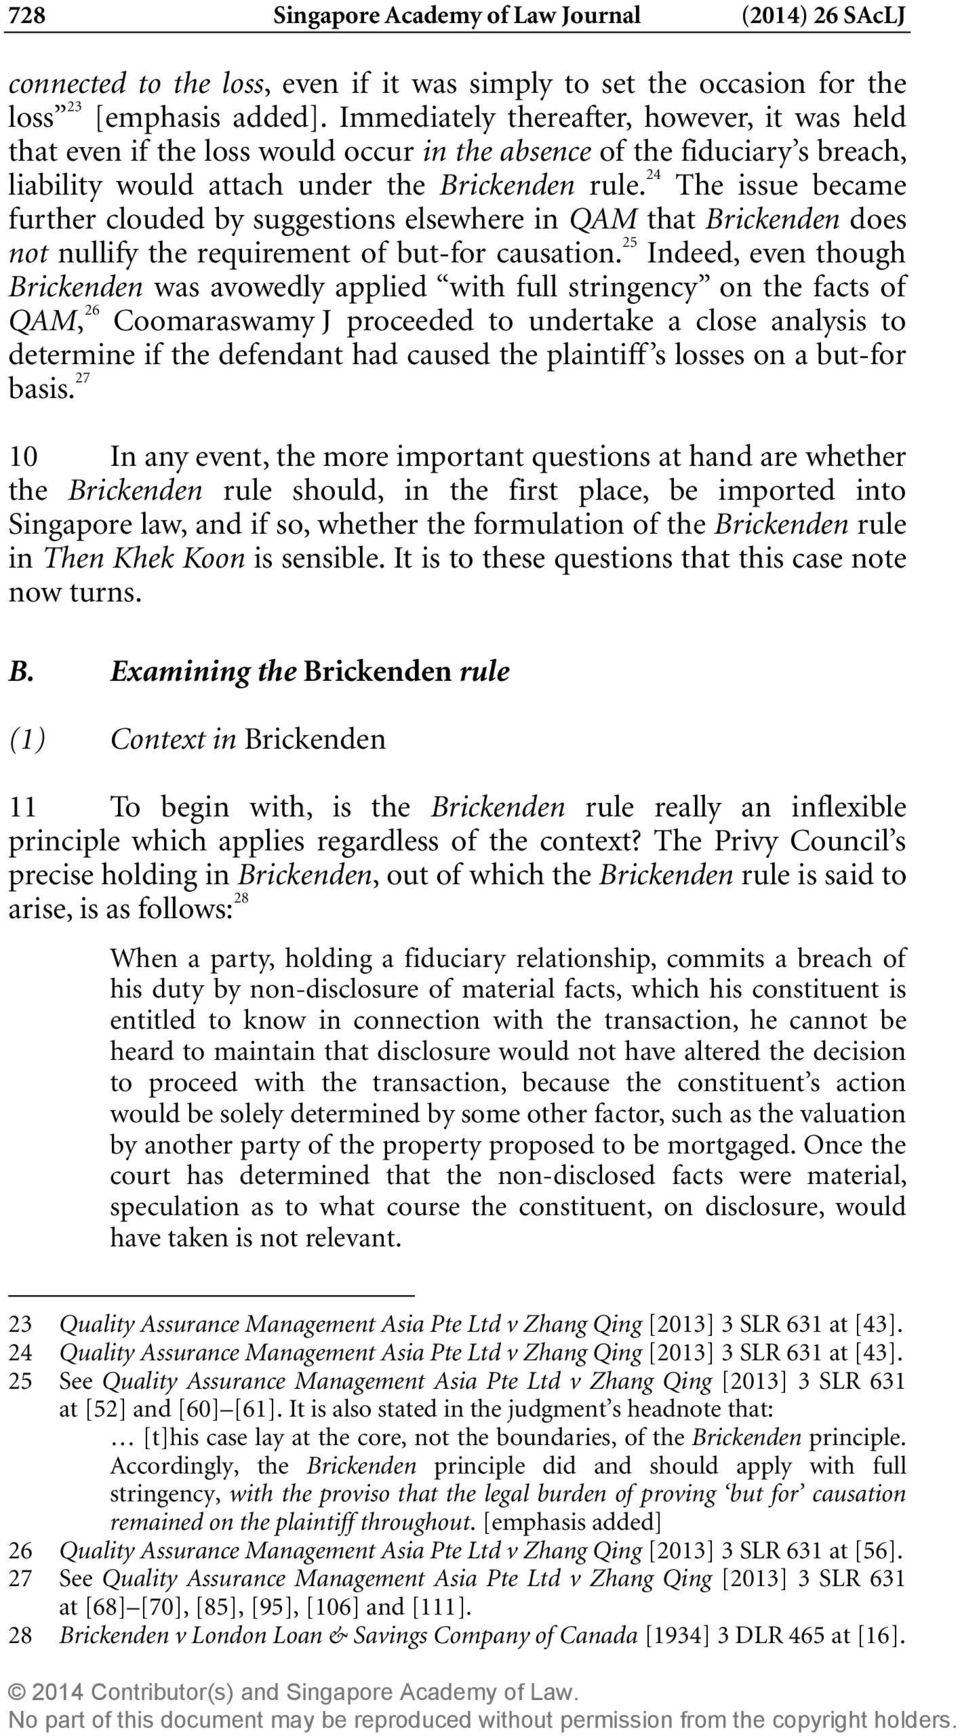 24 The issue became further clouded by suggestions elsewhere in QAM that Brickenden does not nullify the requirement of but-for causation.